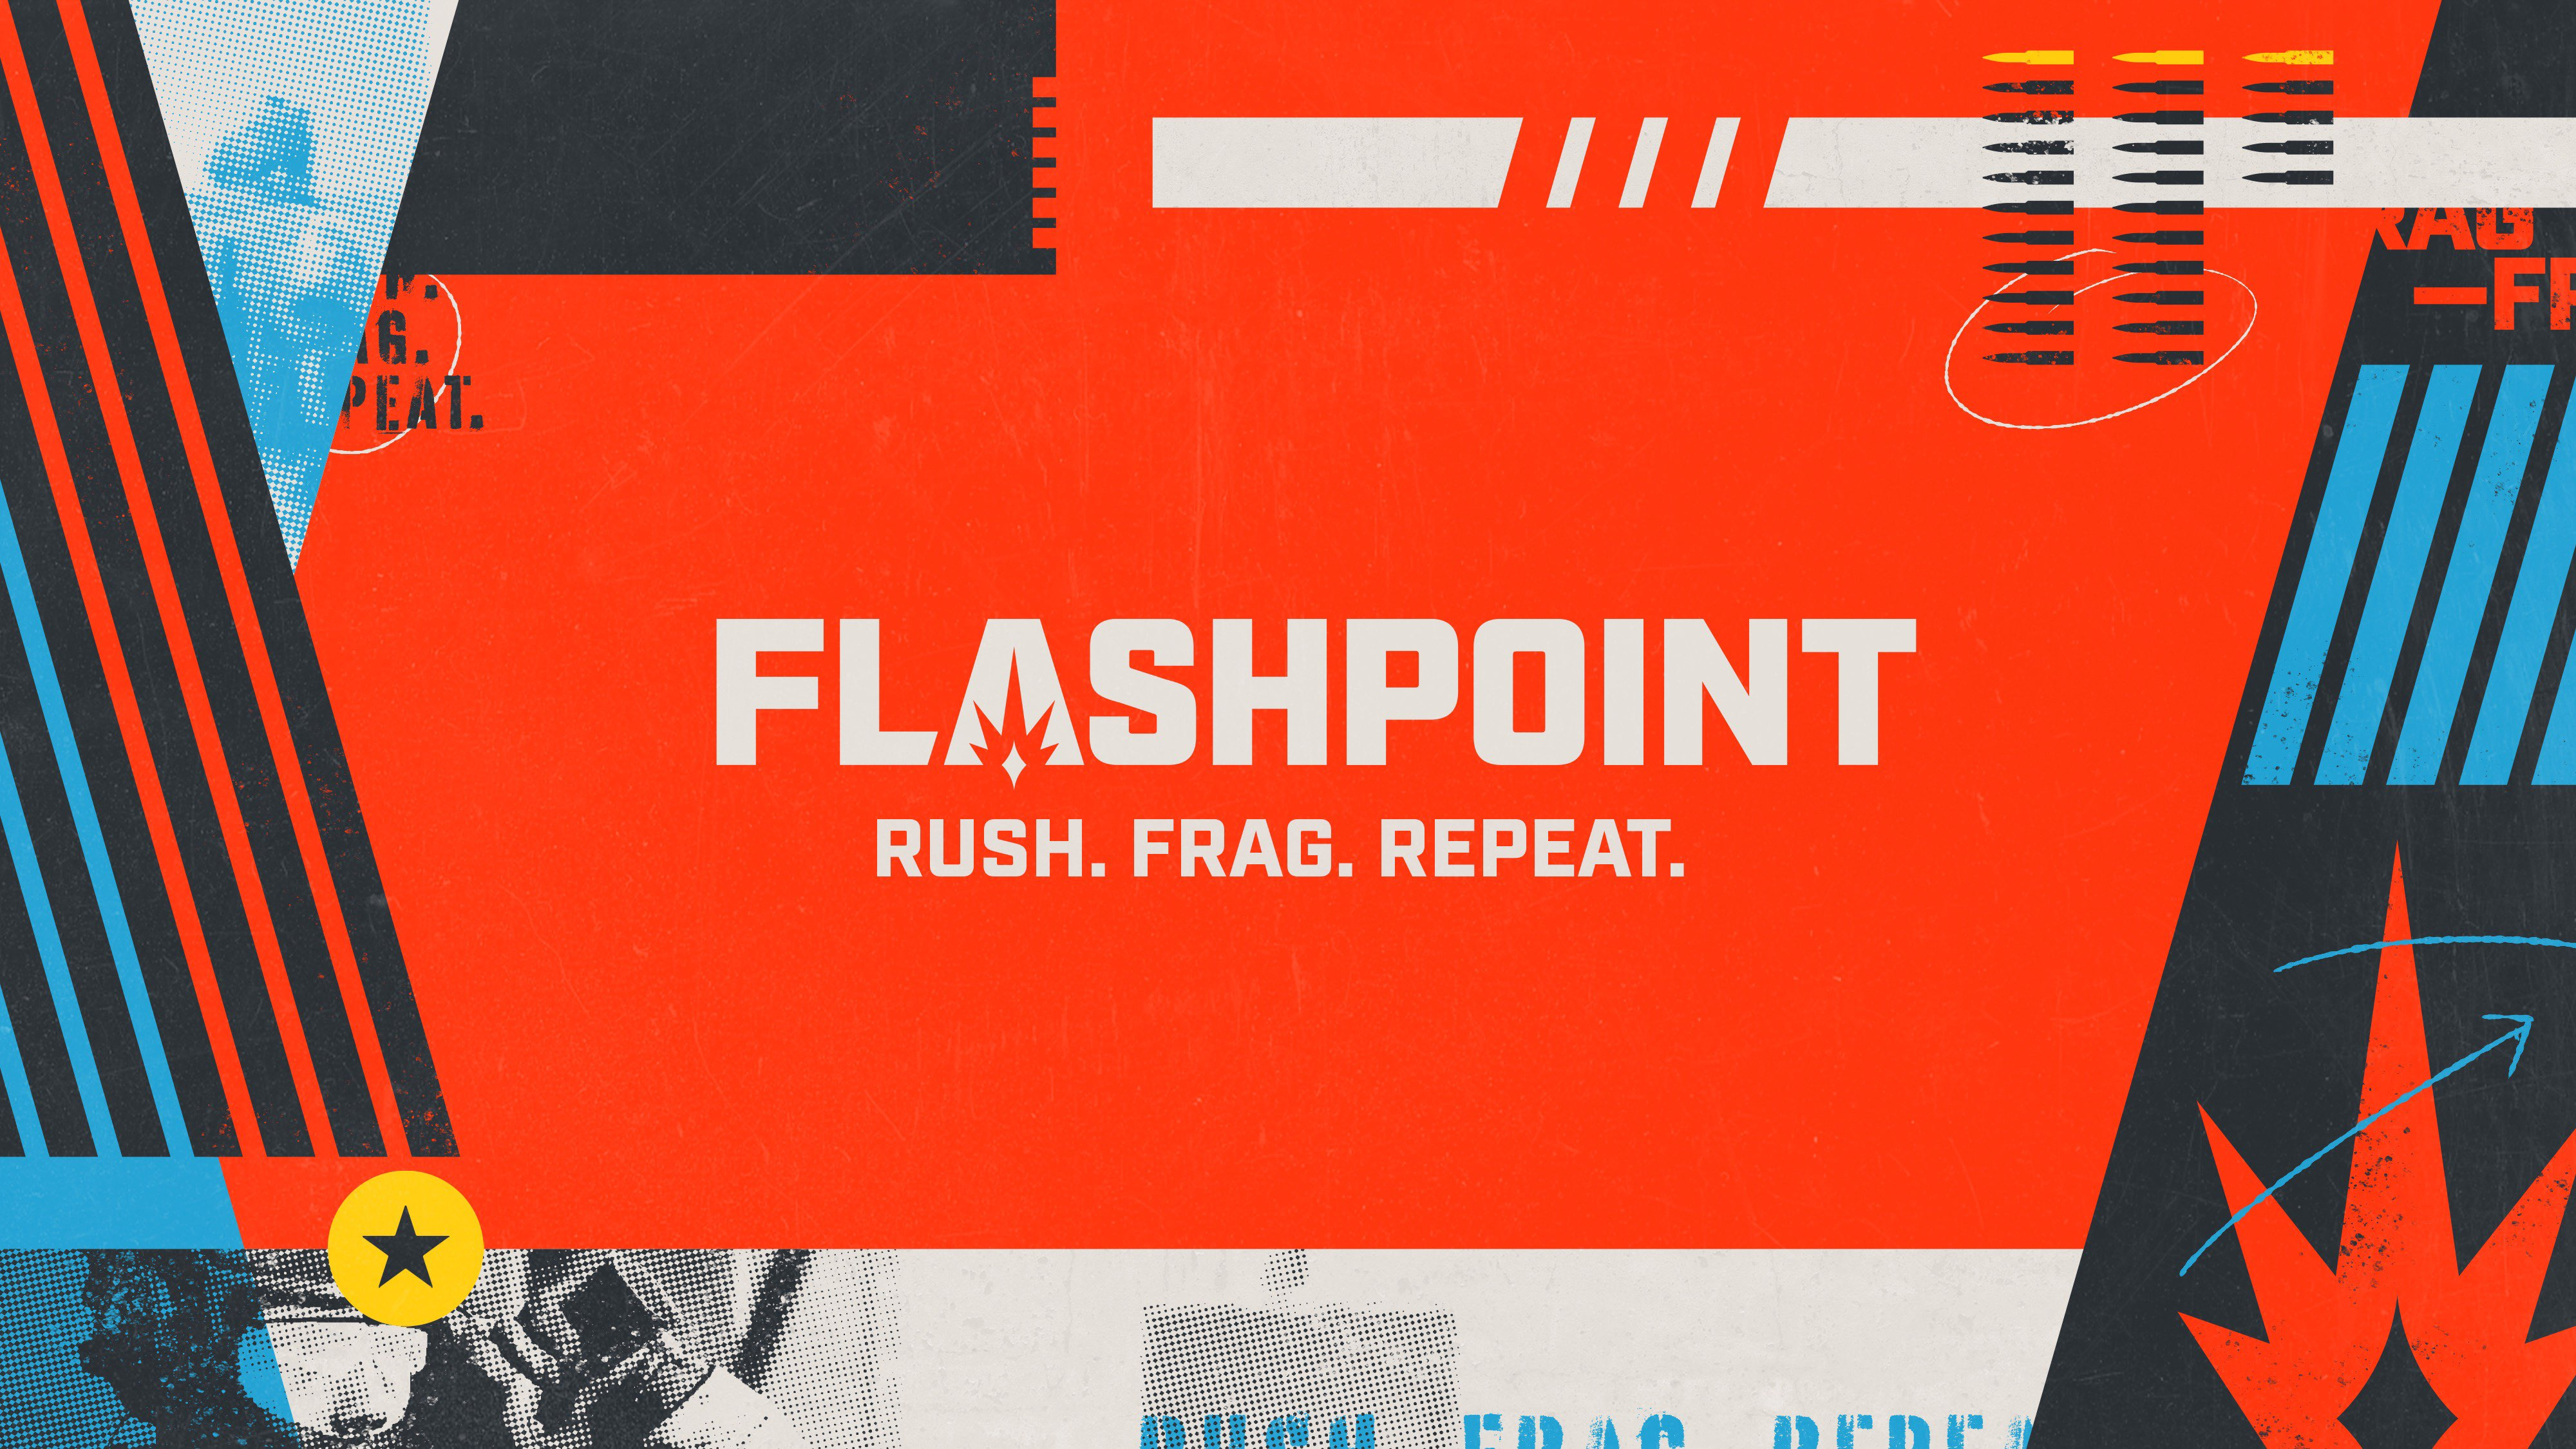 Flashpoint reveals new schedule, matches to resume on March 20